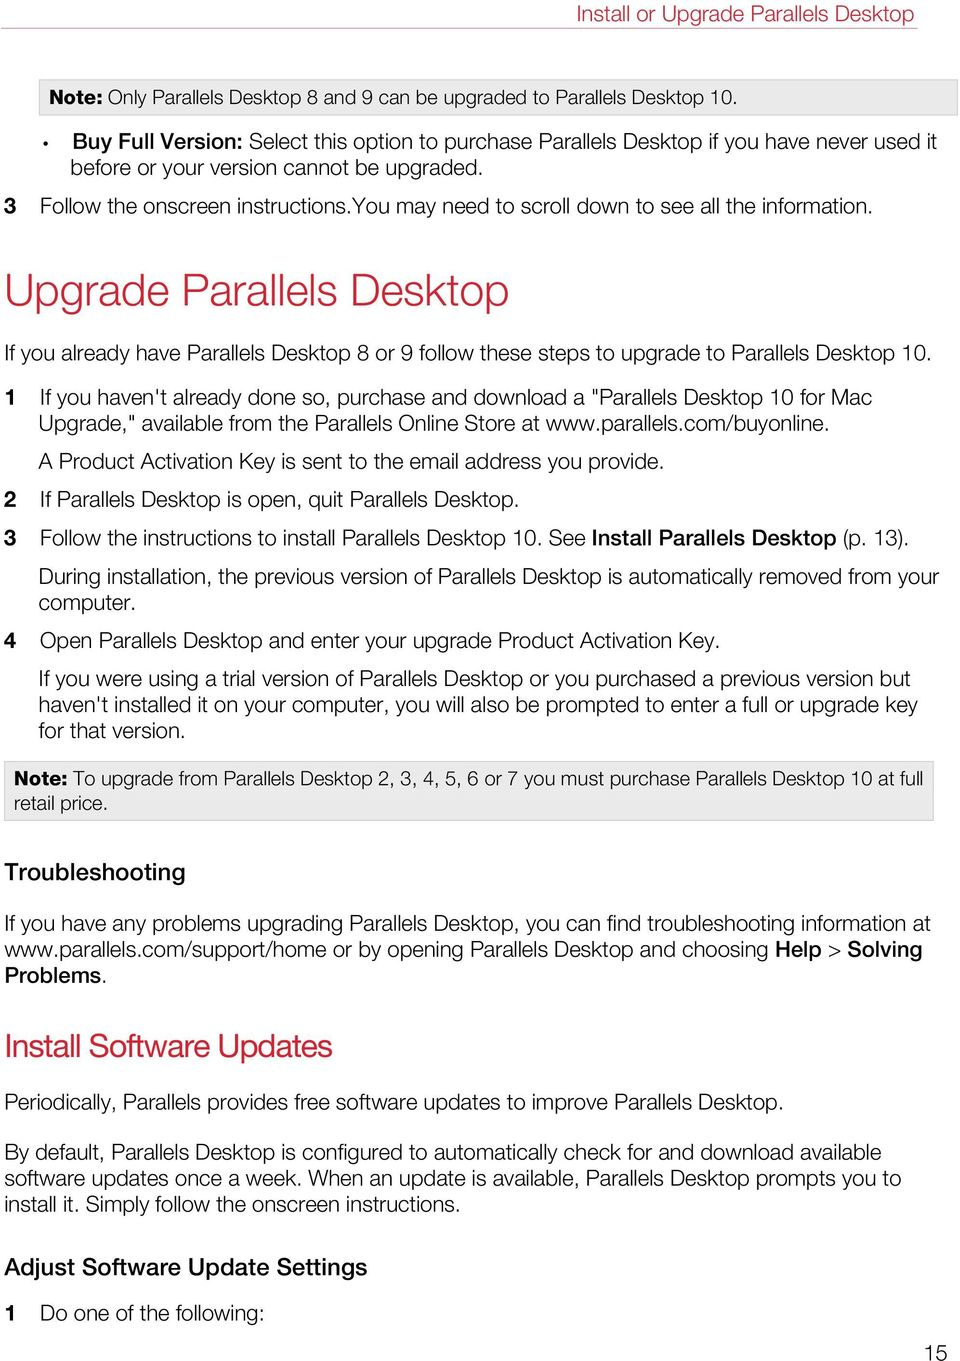 you may need to scroll down to see all the information. Upgrade Parallels Desktop If you already have Parallels Desktop 8 or 9 follow these steps to upgrade to Parallels Desktop 10.